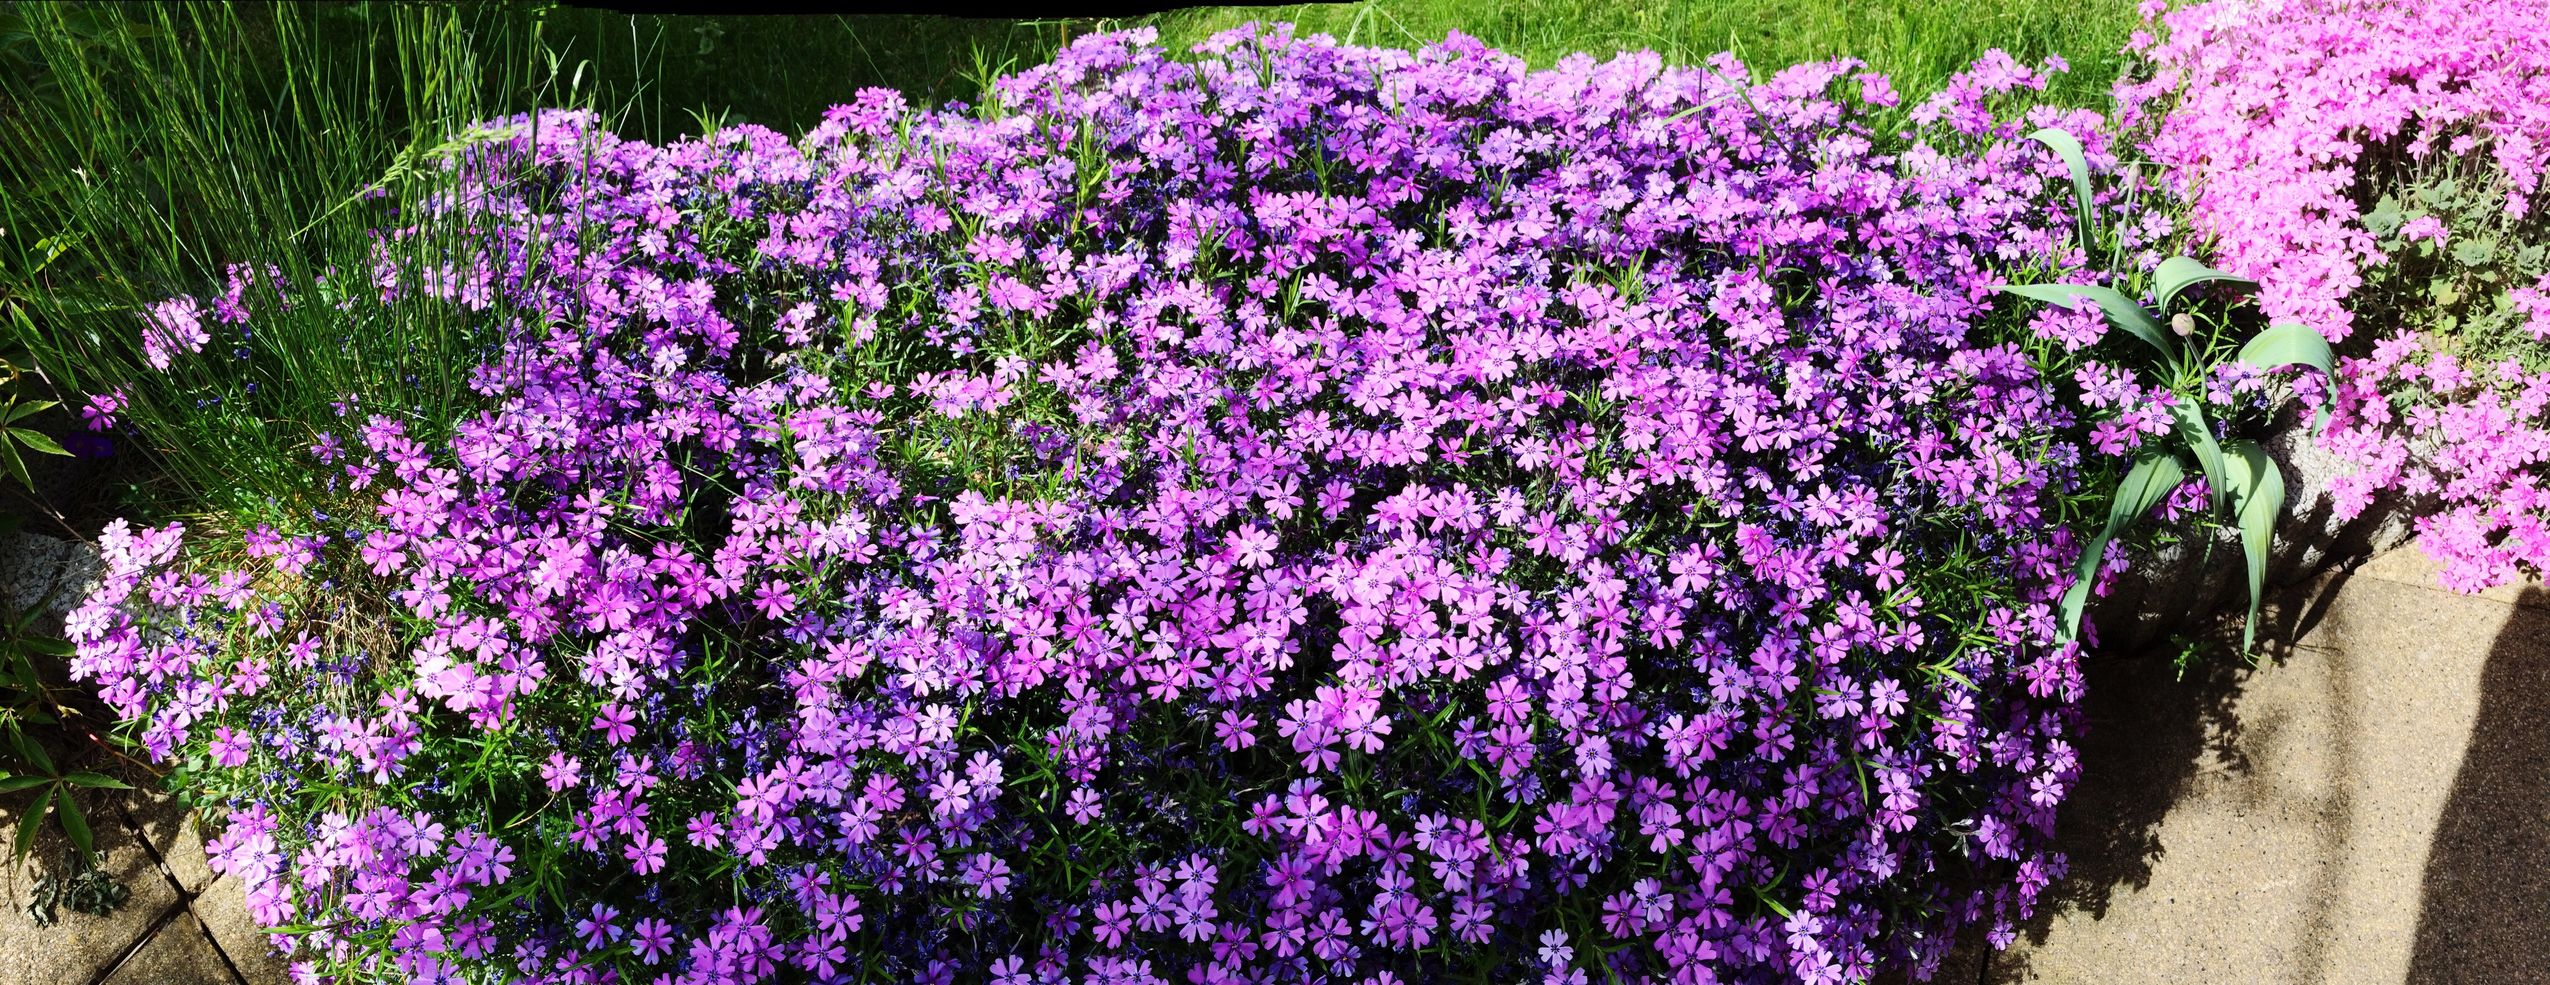 Flower Freshness Fragility Growth Purple Beauty In Nature Close-up Nature Plant Blooming Day Petal Pink Color Springtime In Bloom Growing No People Tranquility Formal Garden Garden